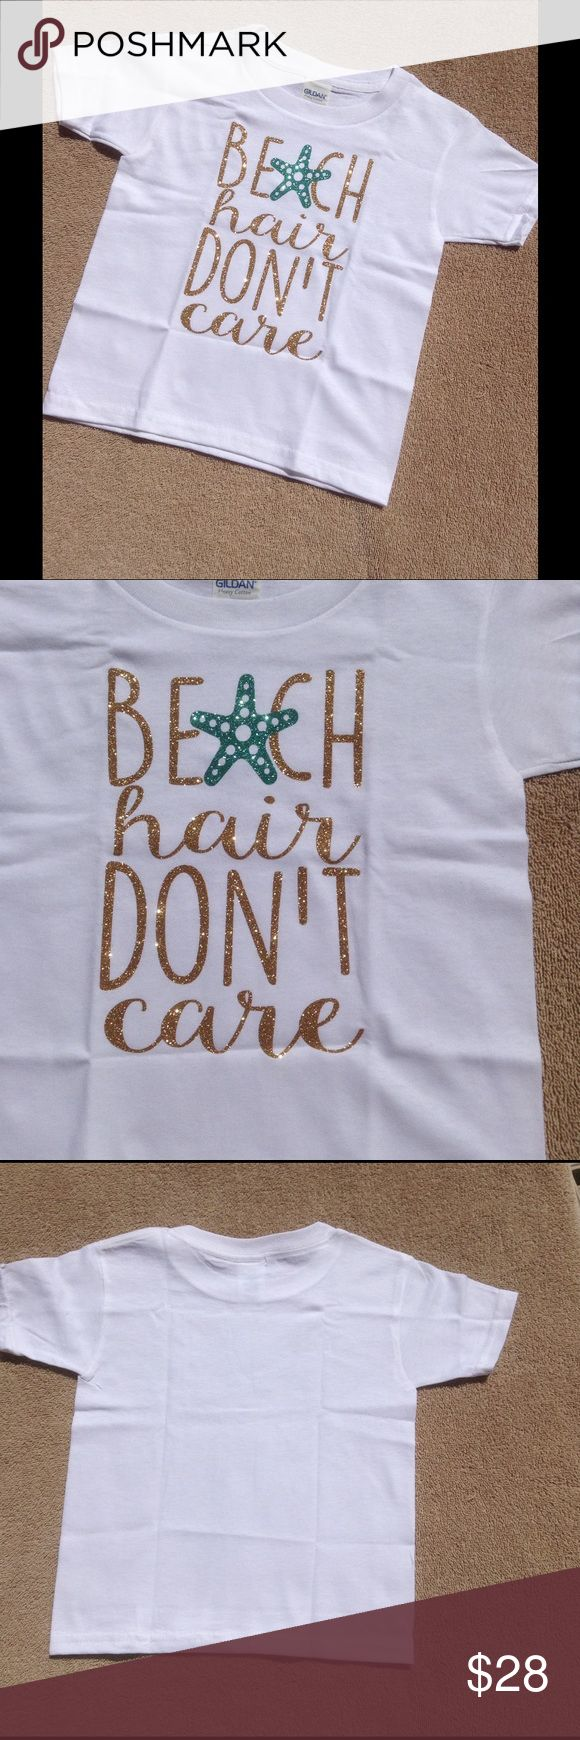 HPBeach Hair, Don't Care Kids Tee This adorable tee features a gold glittery appliqué with a teal green starfish. Perfect for your little beach goer. 100% soft cotton. Gildan brand. Since this is retail, it has no tags. Made exclusive for Sandystarfish. Sandystarfish Shirts & Tops Tees - Short Sleeve